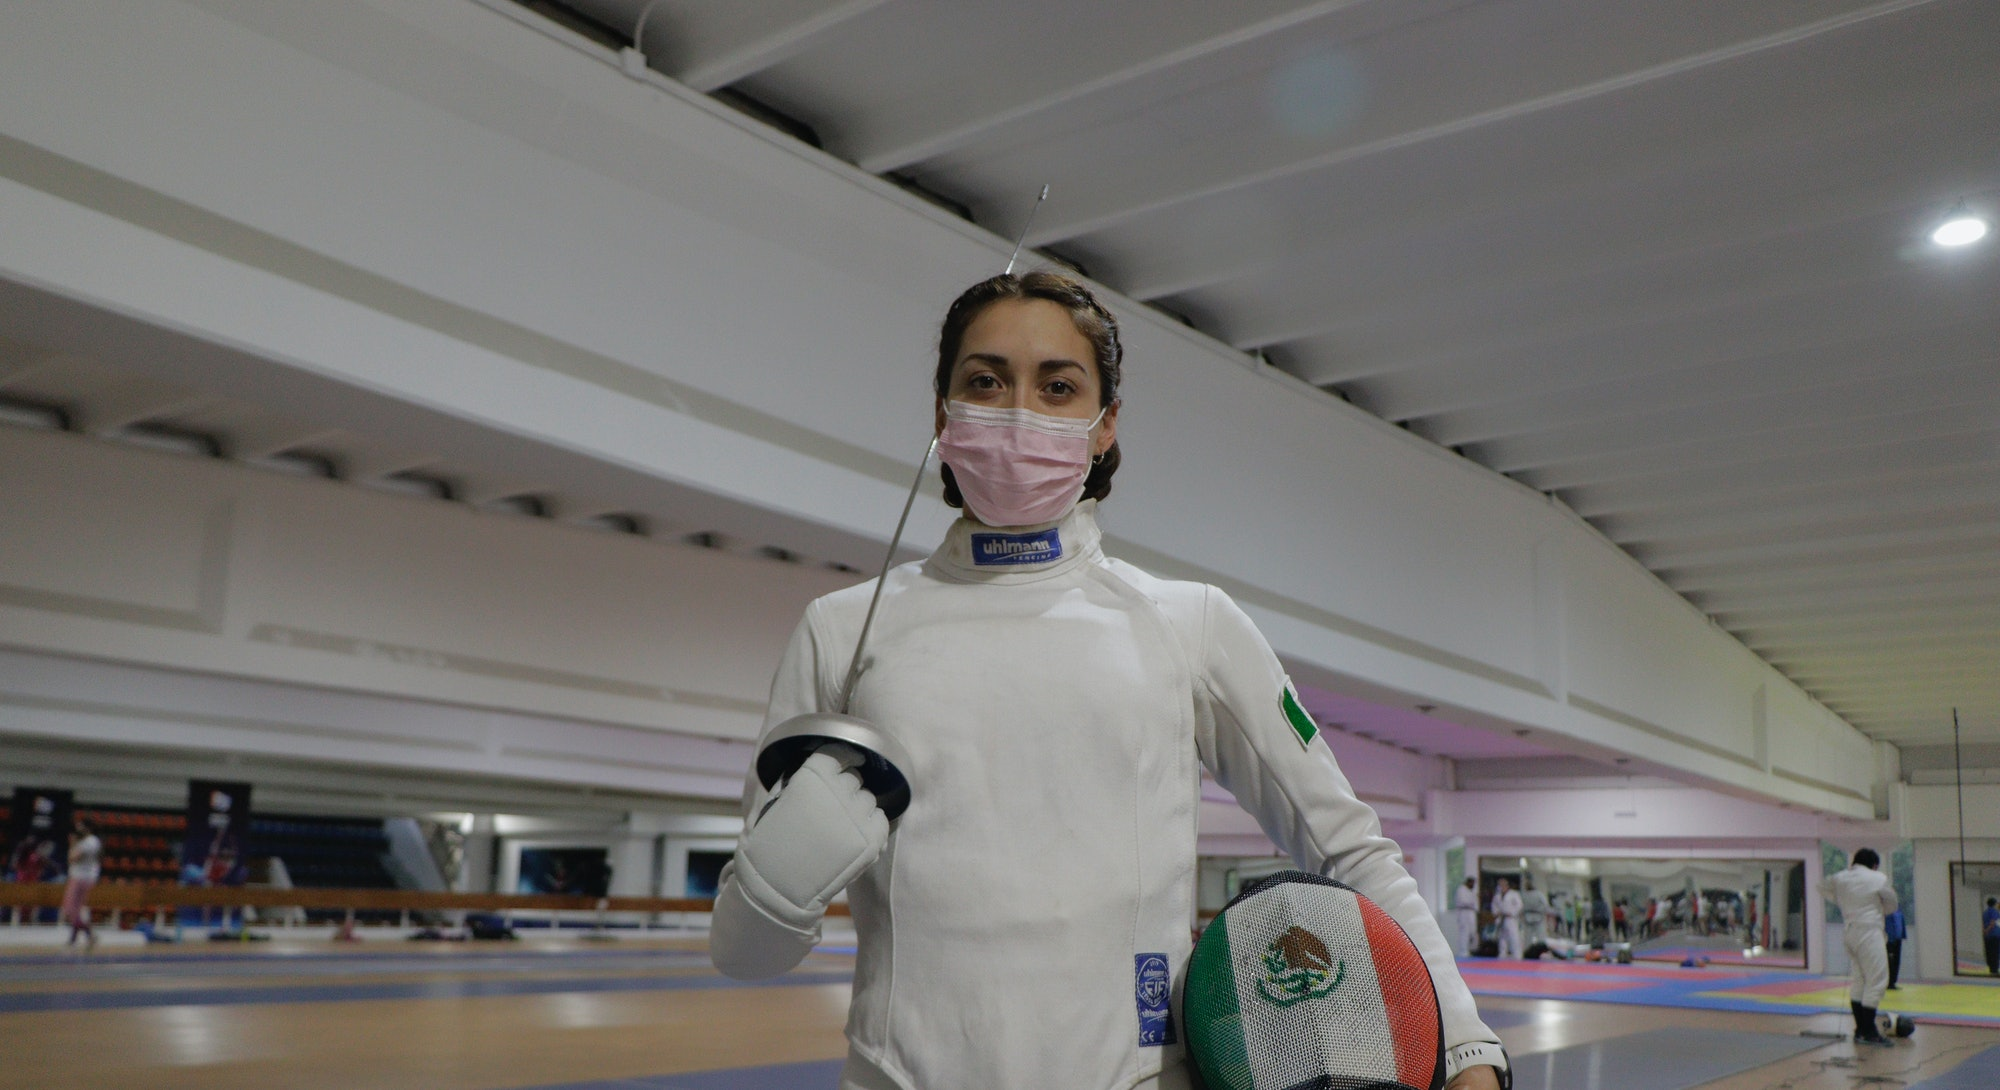 Mariana Arceo, mexican fencer and athlete, poses before her final training session at the Benito Juarez Gymnasium in Mexico City ahead of her upcoming participation in the Tokyo 2020 Olympic Games during the COVID-19 health emergency.  Arceo won a gold medal at the 2019 Pan American Games in the modern pentathlon event, becoming the first Mexican woman to win gold in this discipline, and will participate for the first time in the Tokyo 2020 Olympic Games. (Photo by Gerardo Vieyra/NurPhoto via Getty Images)